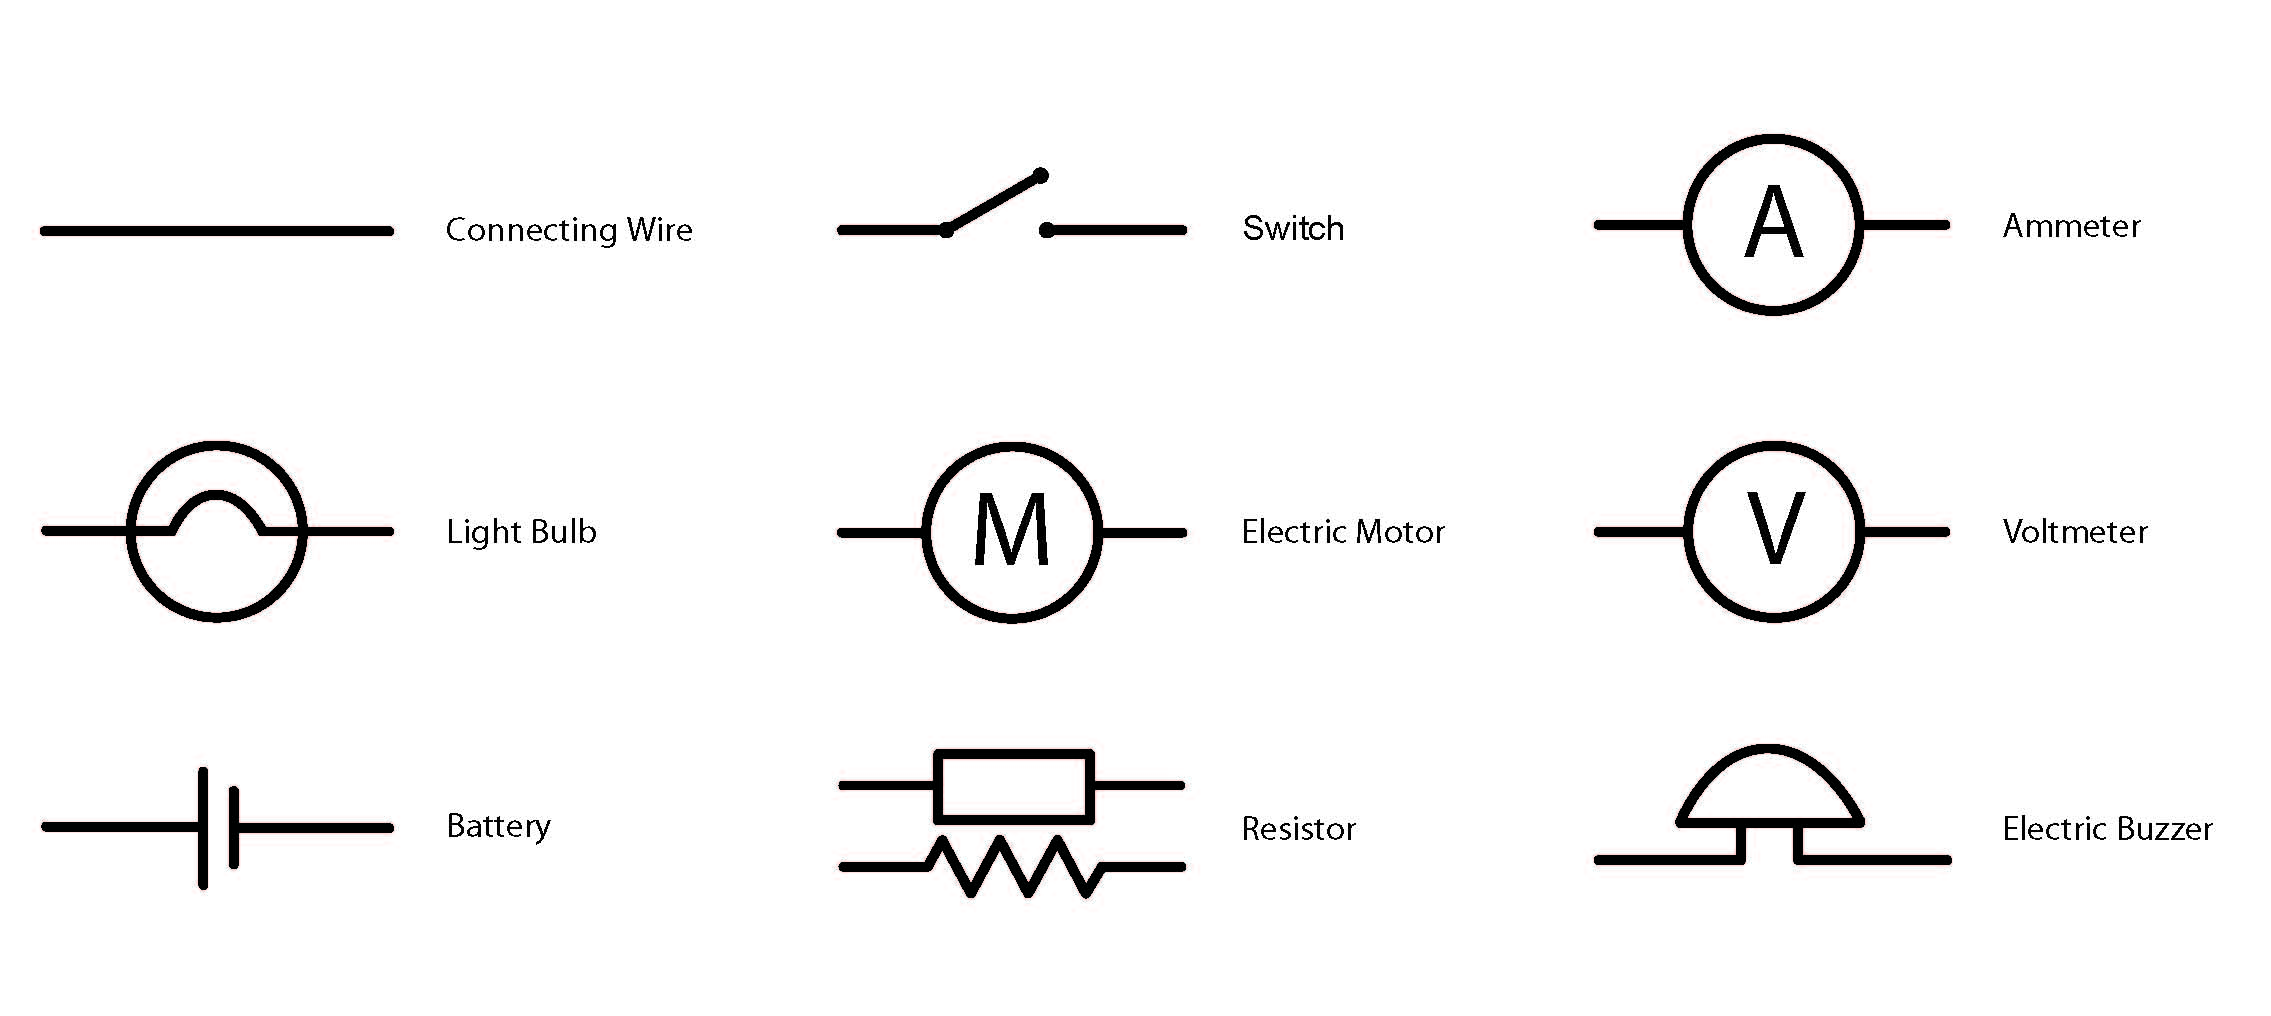 wire diagram symbol for circuit breaker